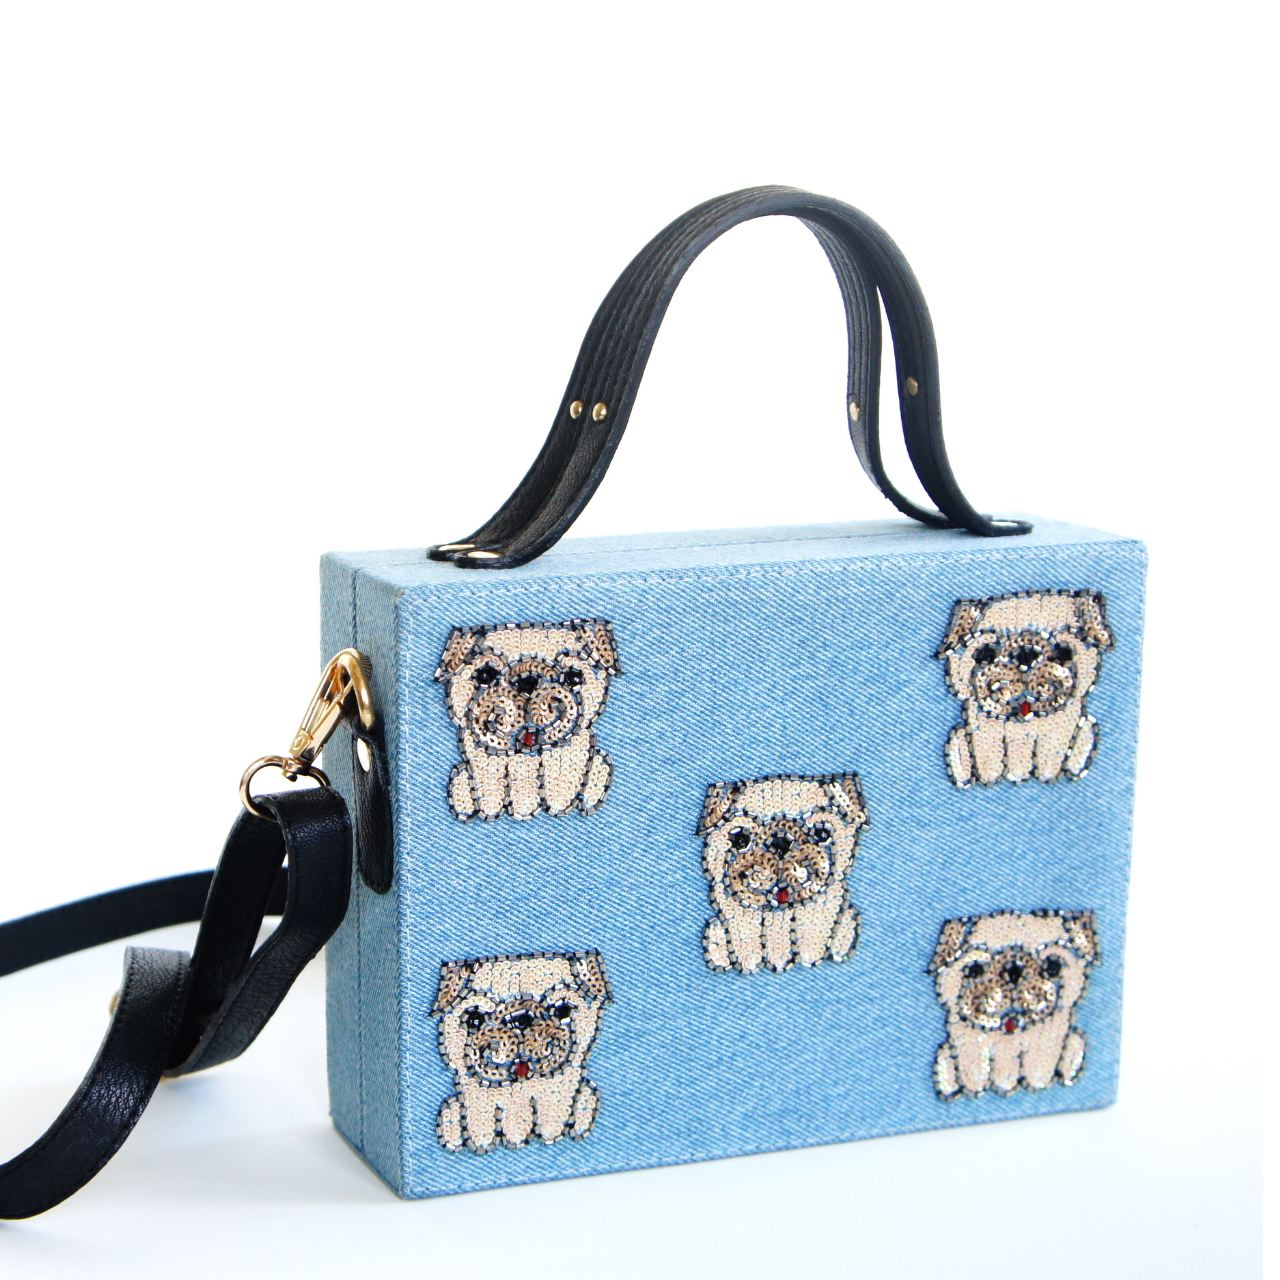 Black faux leather or denim bag with hand embroirdered sequin puppies. This bag has a lush velvet lining and a majnectic closure on top. The metal chain can be used to sling the bag.